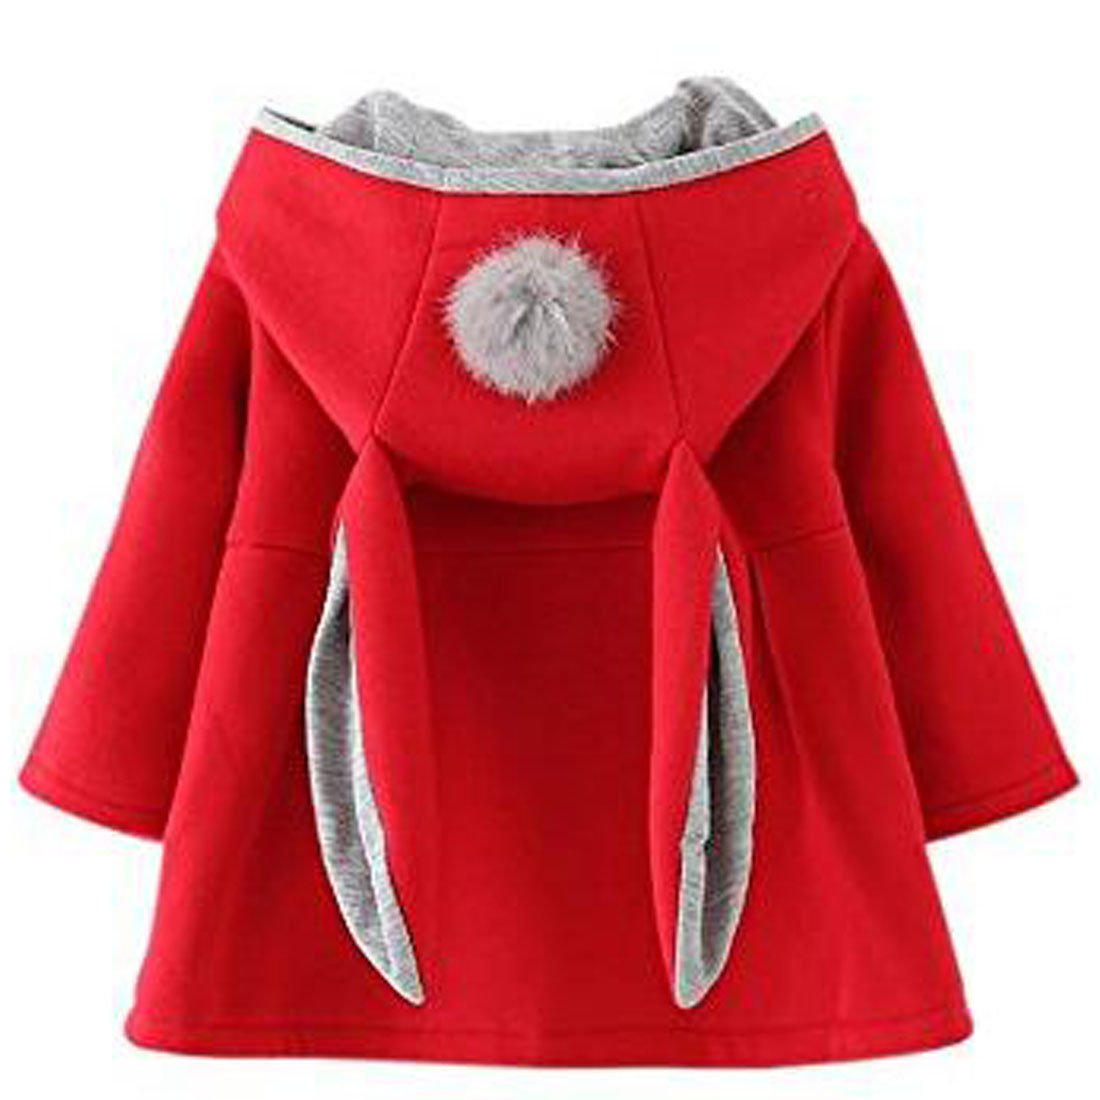 ARAUS Baby Girl Rabbit Ear Jacket Long Sleeve Button Down Ear Coat Toddler Kids Fall Winter Hoodie Outerwear